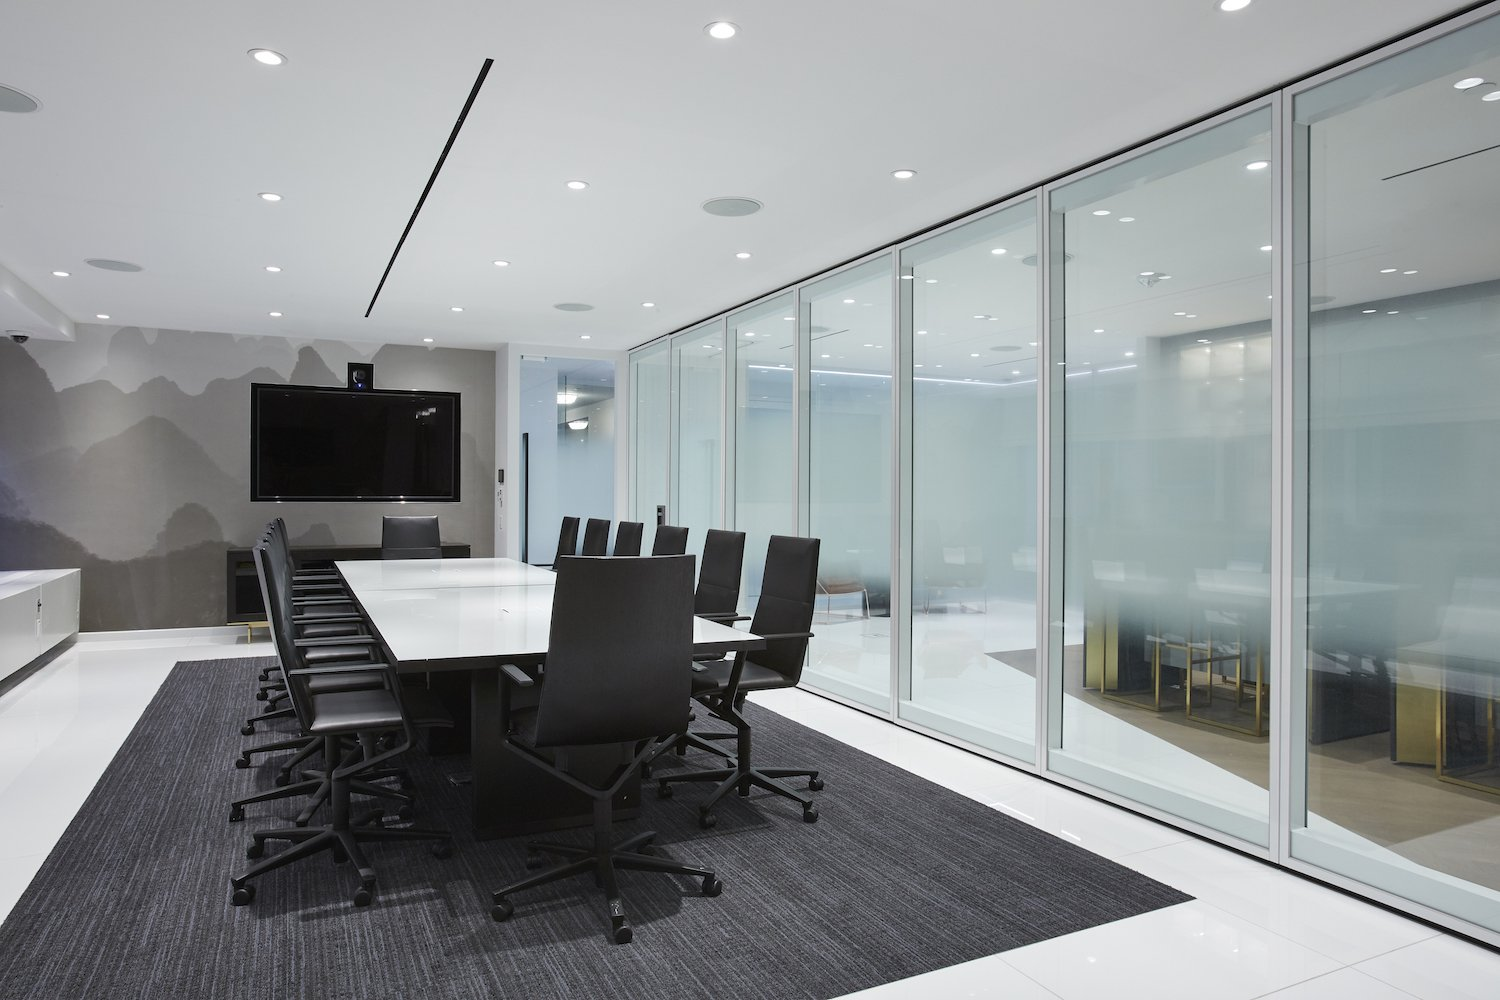 Meeting Room with glass walls